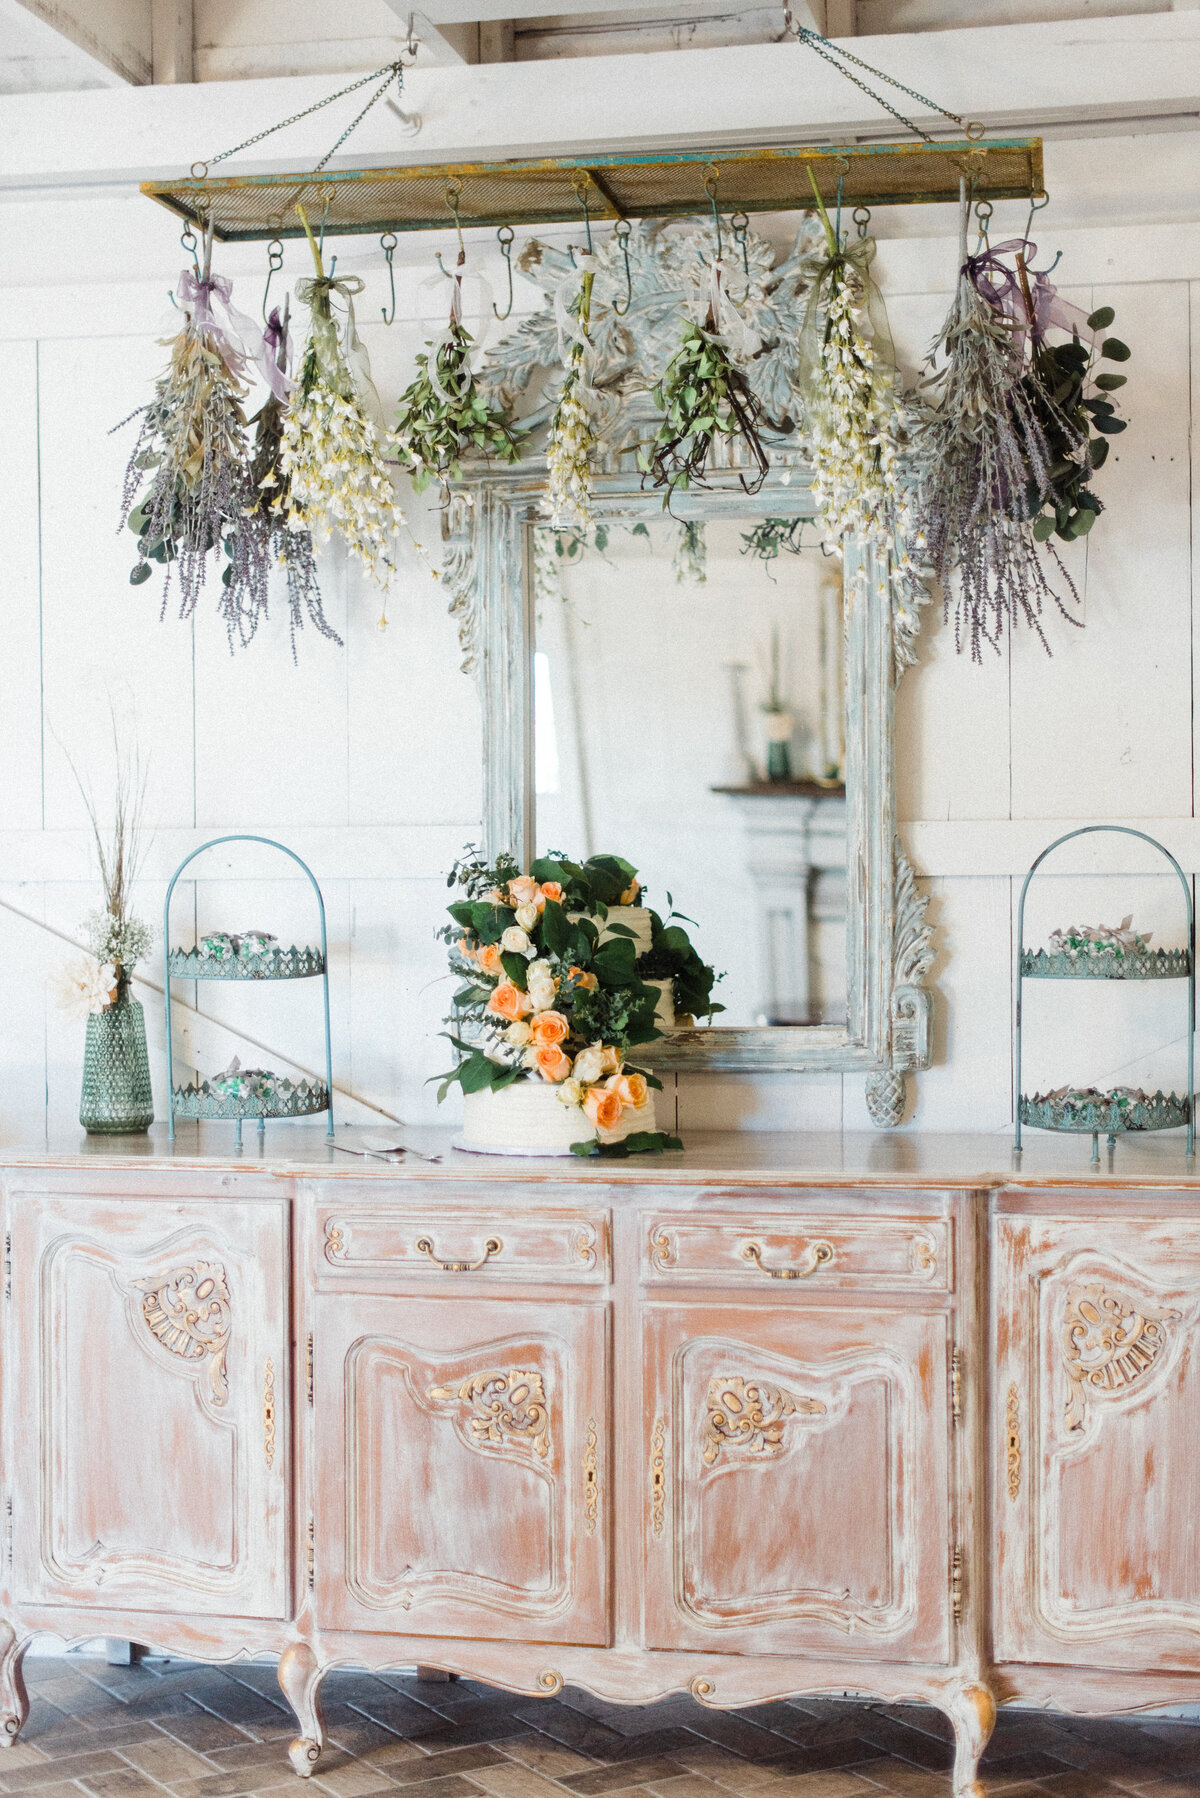 Rustic bar table set up with hanging dried florals and a wedding cake